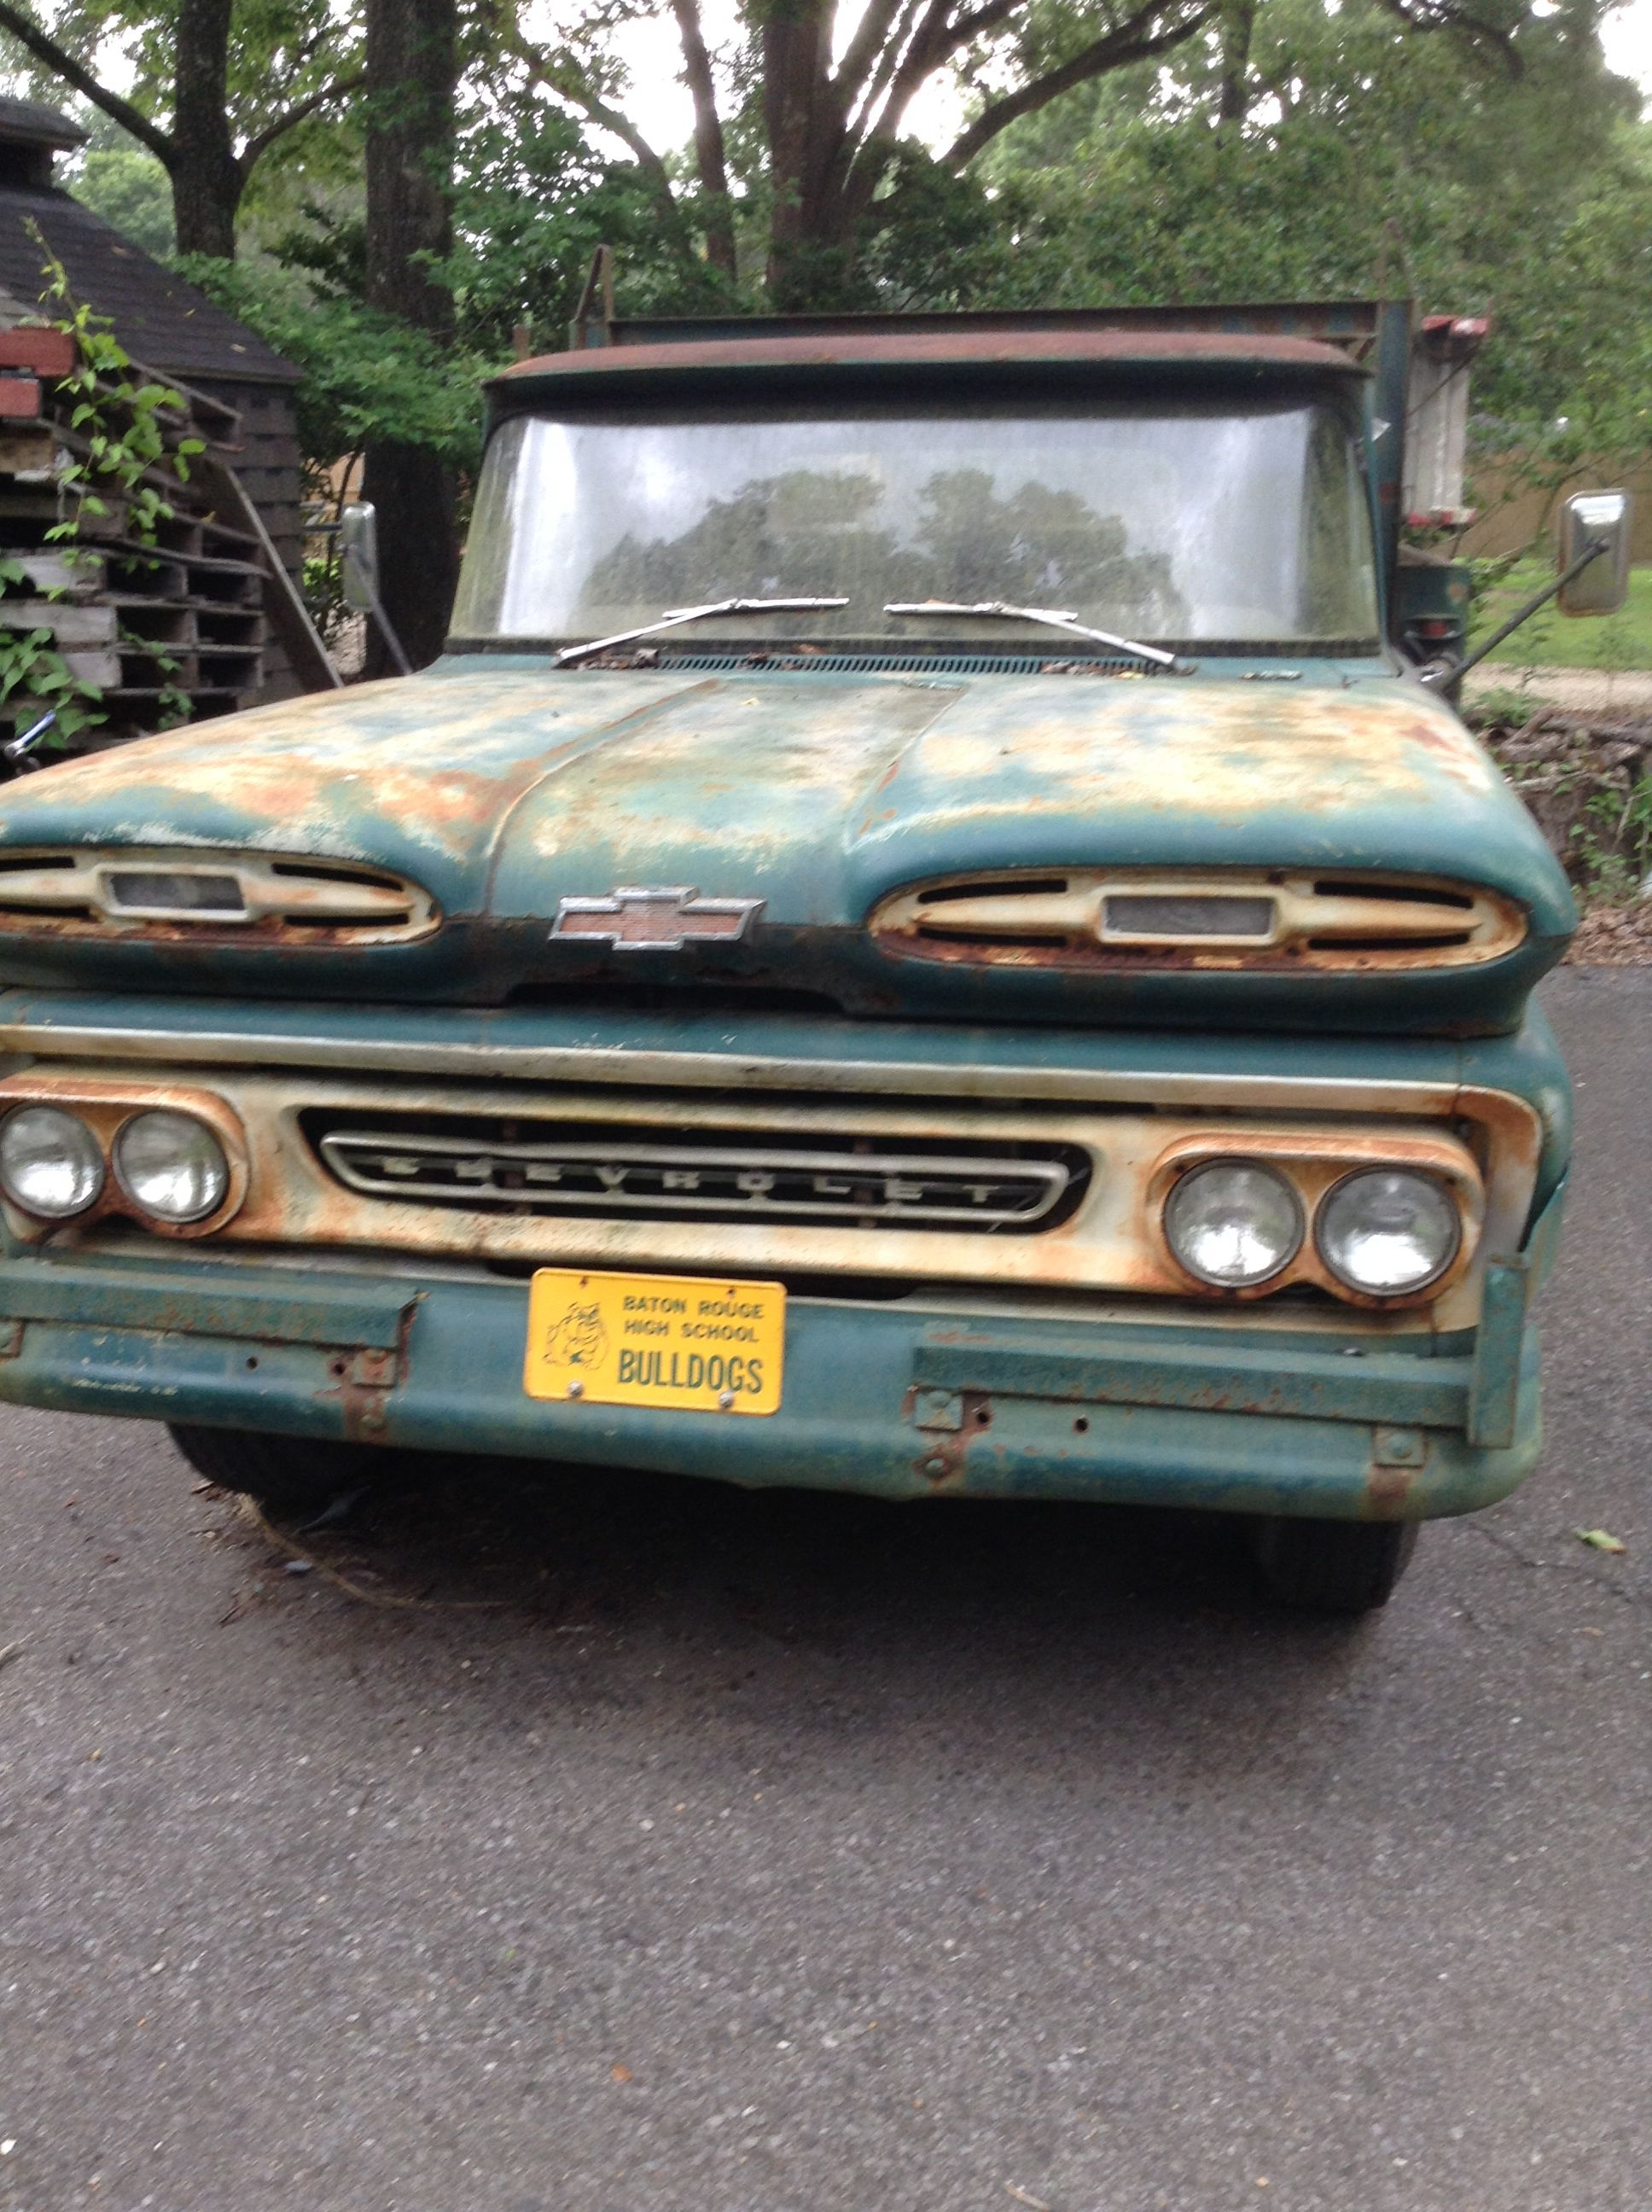 My Dads 1961 Chevy 1 Ton Pickup He Is The Second Owner And This Apache Truck Has Just Shy Of One Million Miles On Original Motor